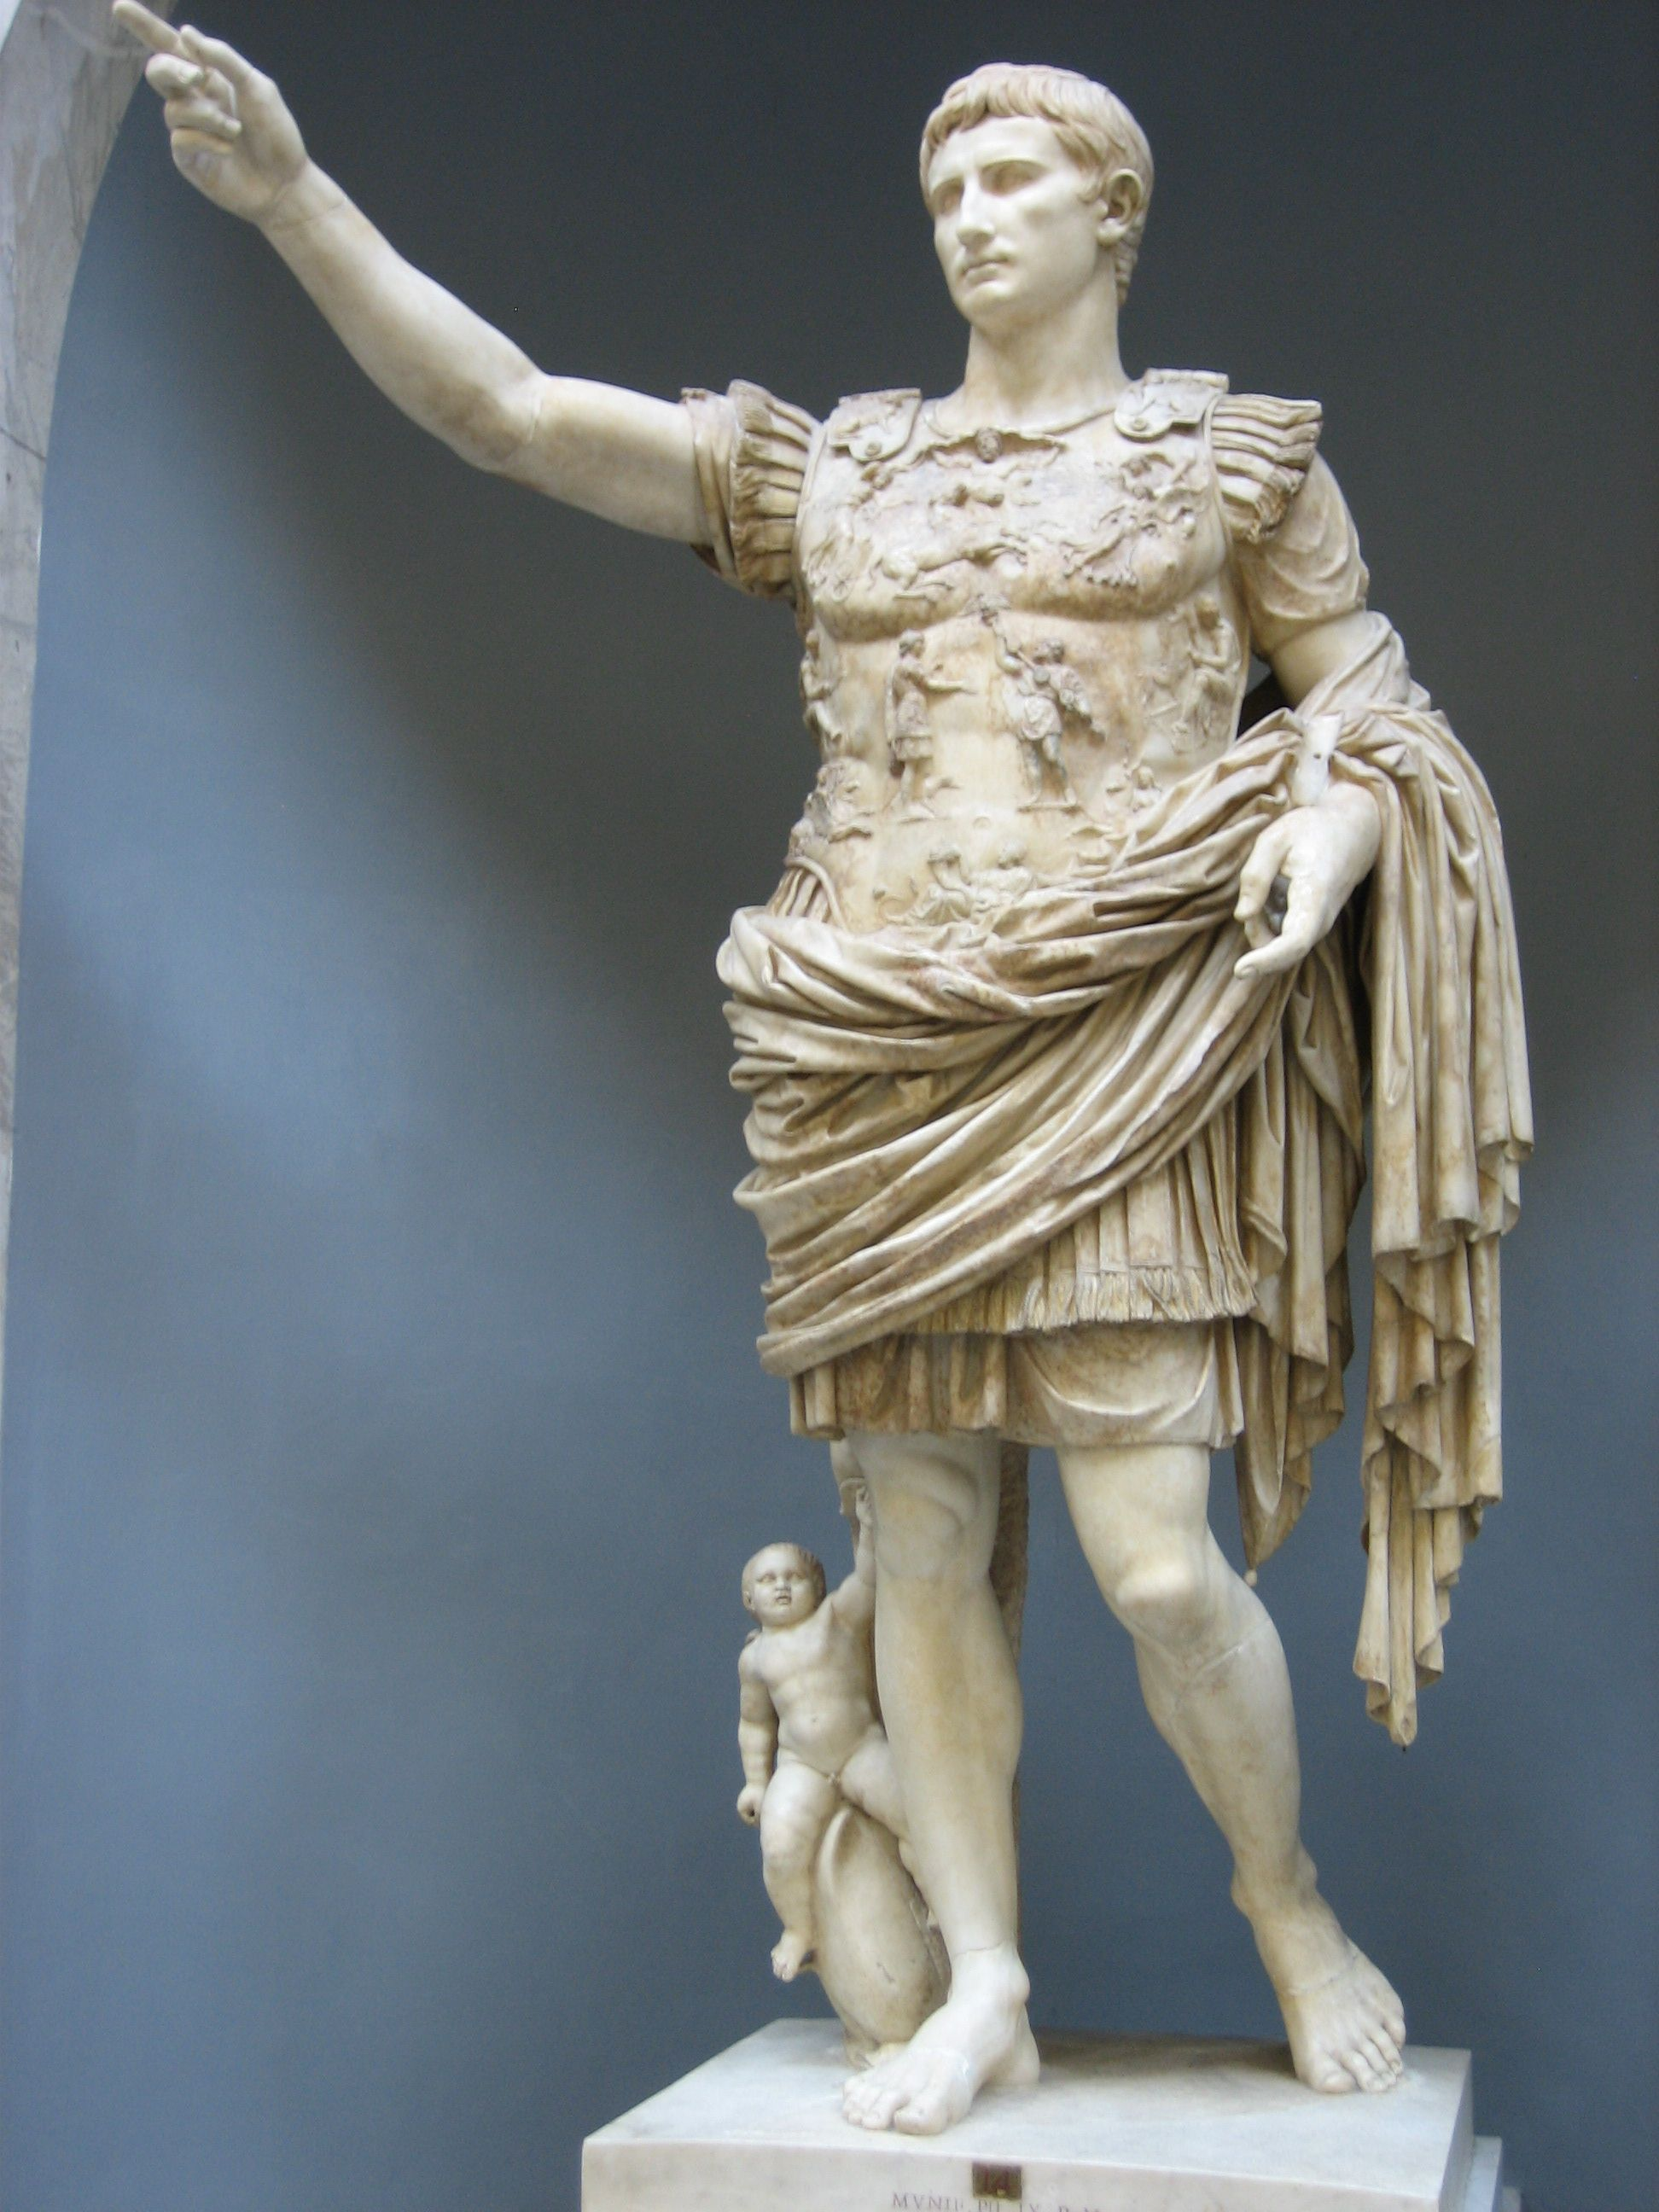 Life of augustus caesar as the first roman emperor